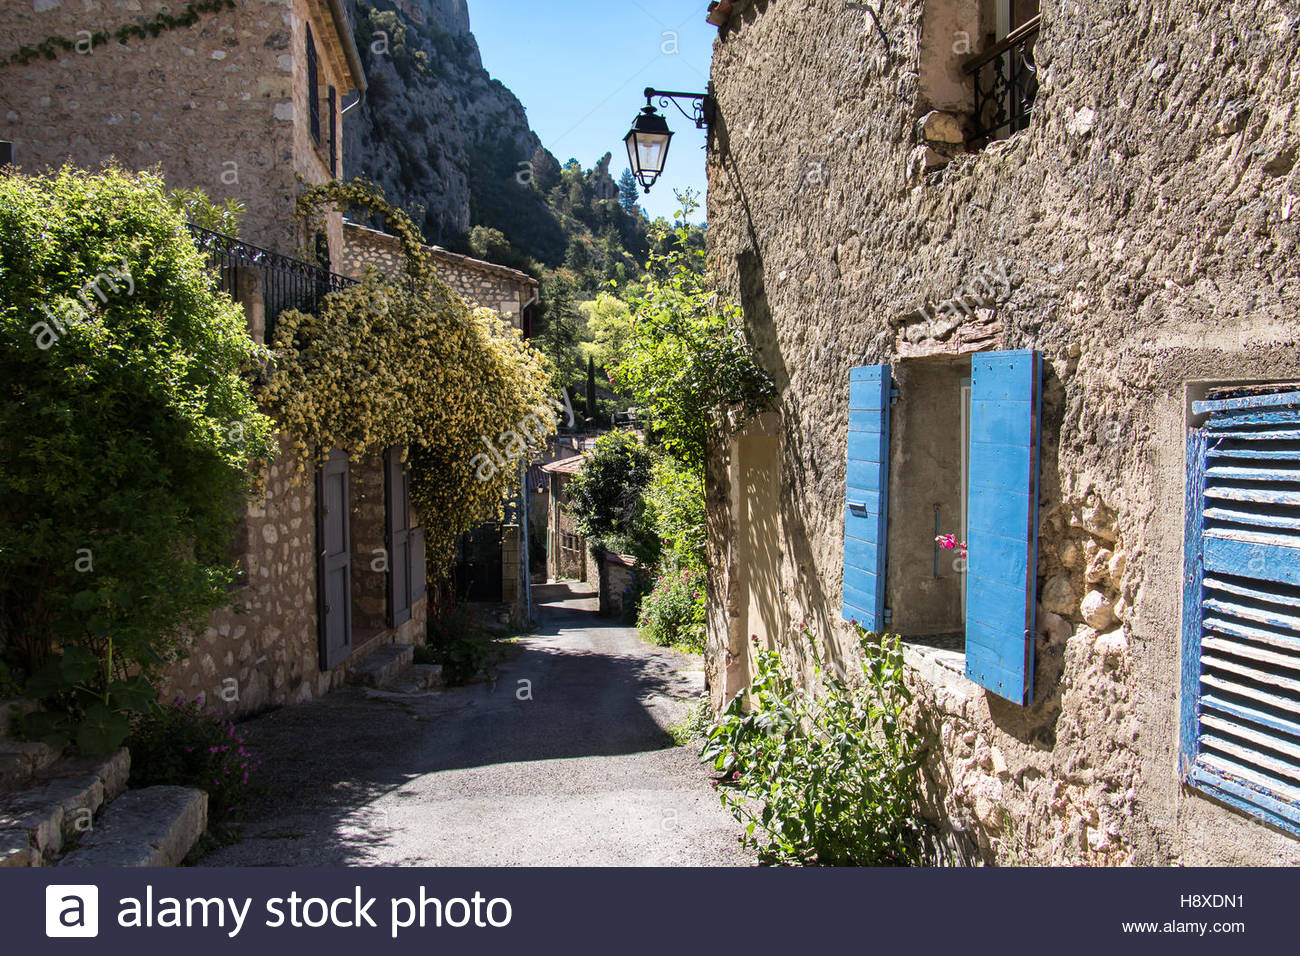 Medieval Village Moustiers-Sainte-Marie, departement of Alpes-de-Haute-Provence, Provence, picturesque stone buildings, - Stock Image